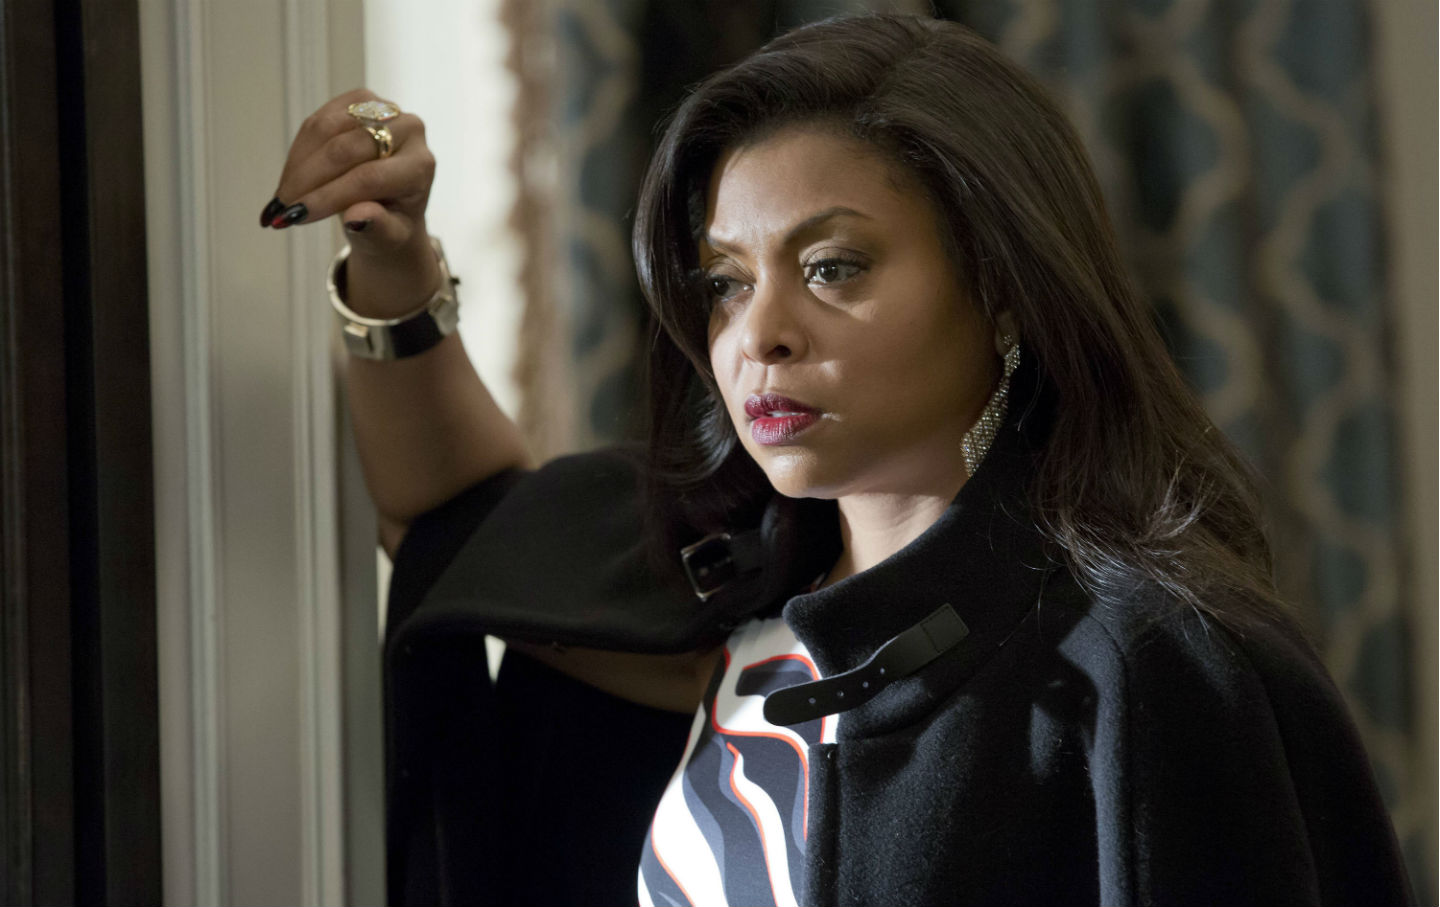 Taraji-P.-Henson-as-Empires-Cookie